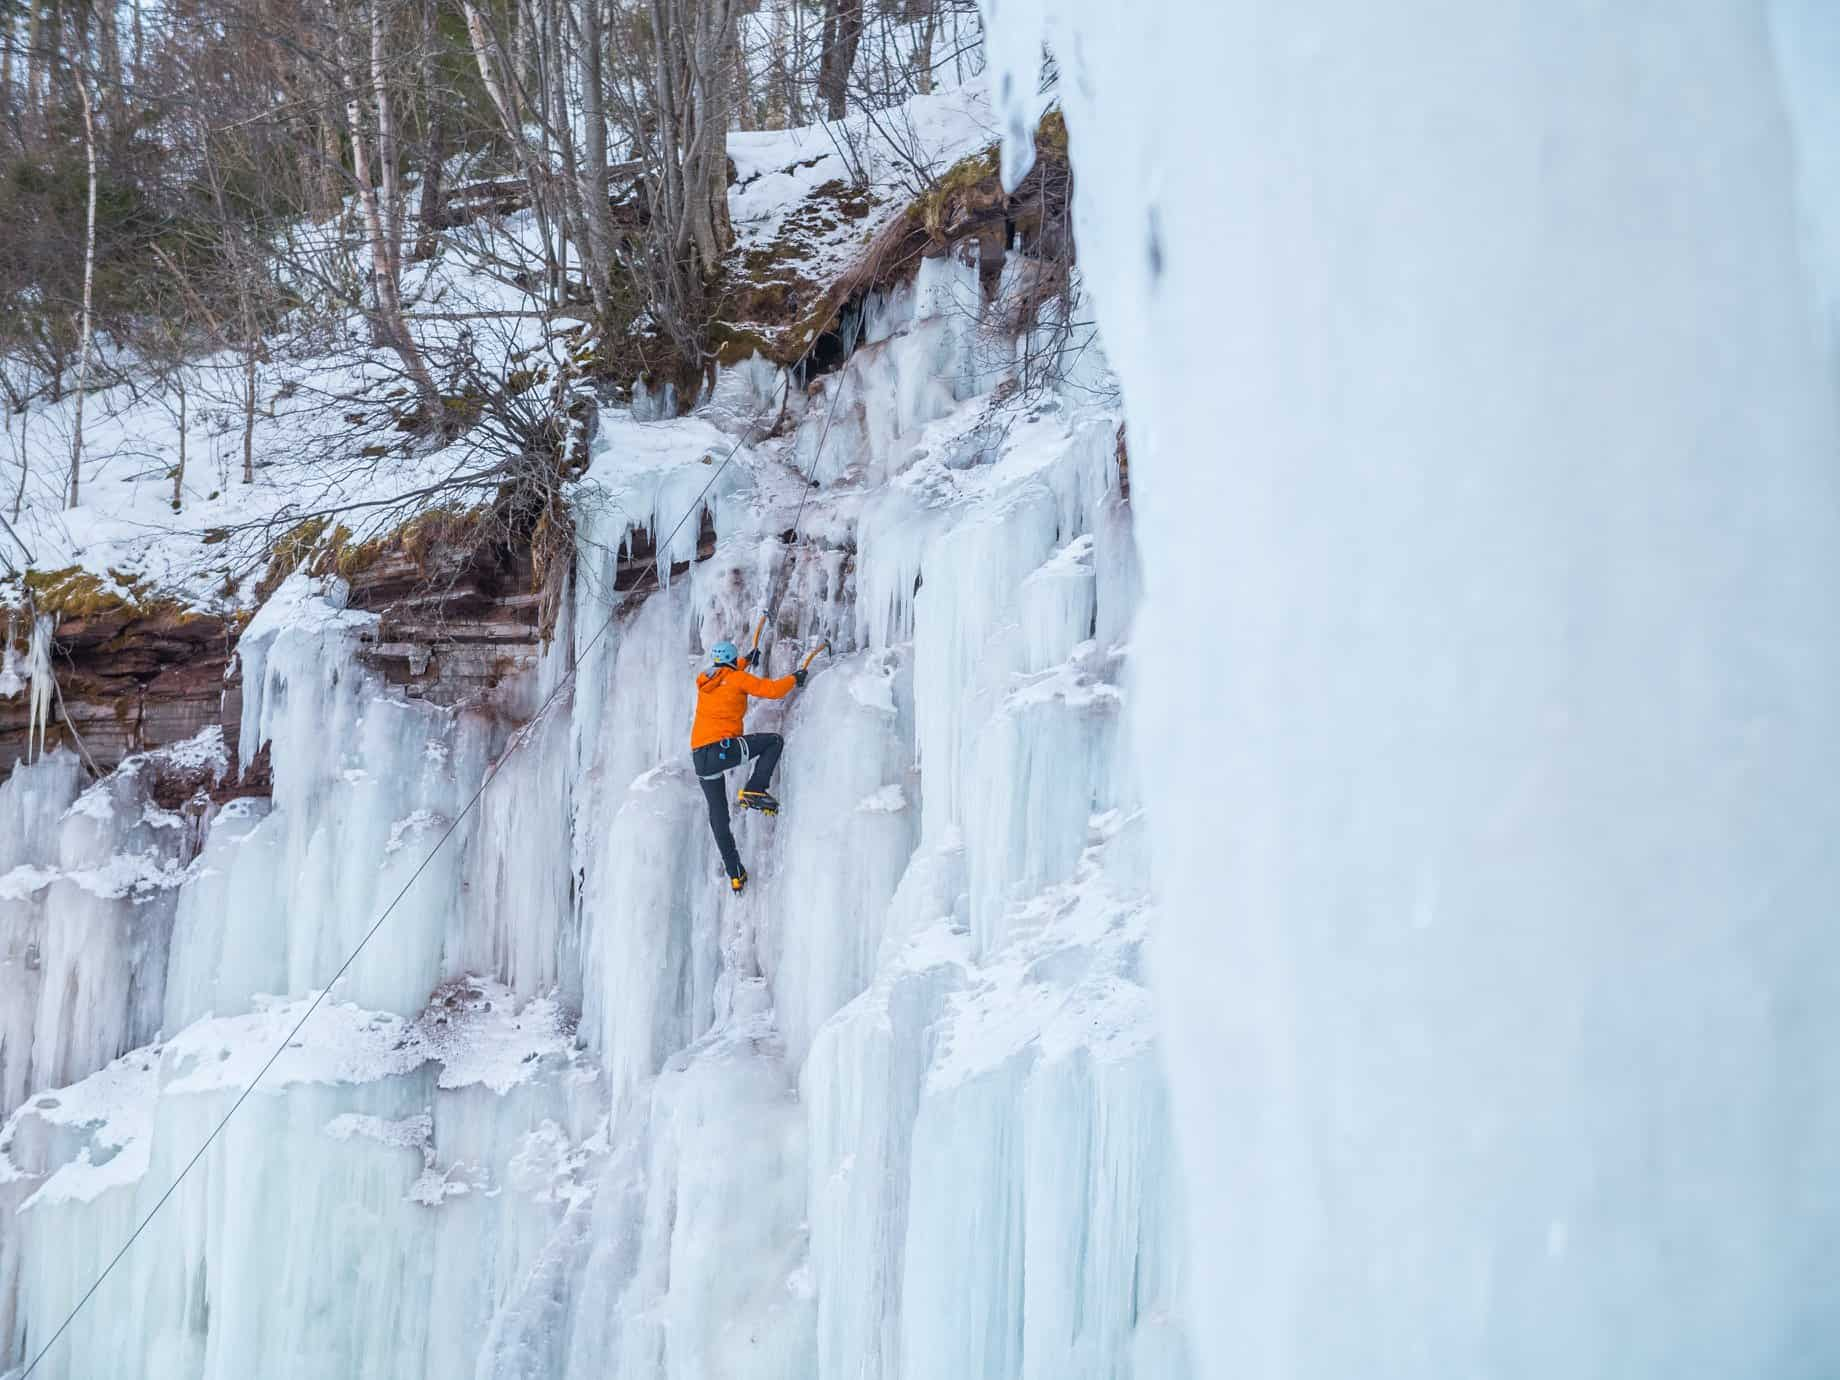 Climbing a waterfall in Houghton, Michigan